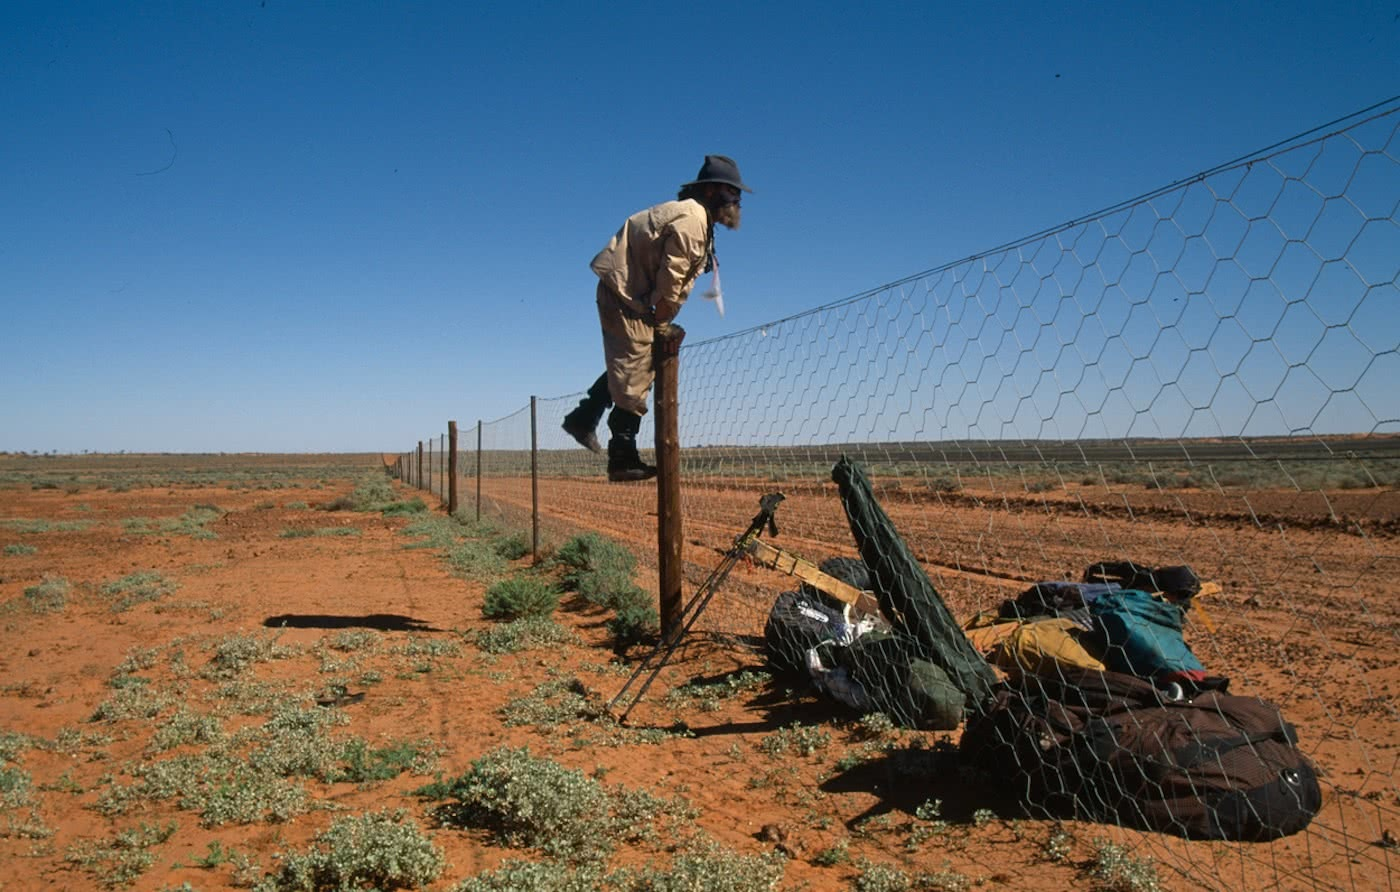 Off the grid A night with Jon Muir Jon_Muir_crossing_a_dingo_fence_during_his_traverse_across_Australia